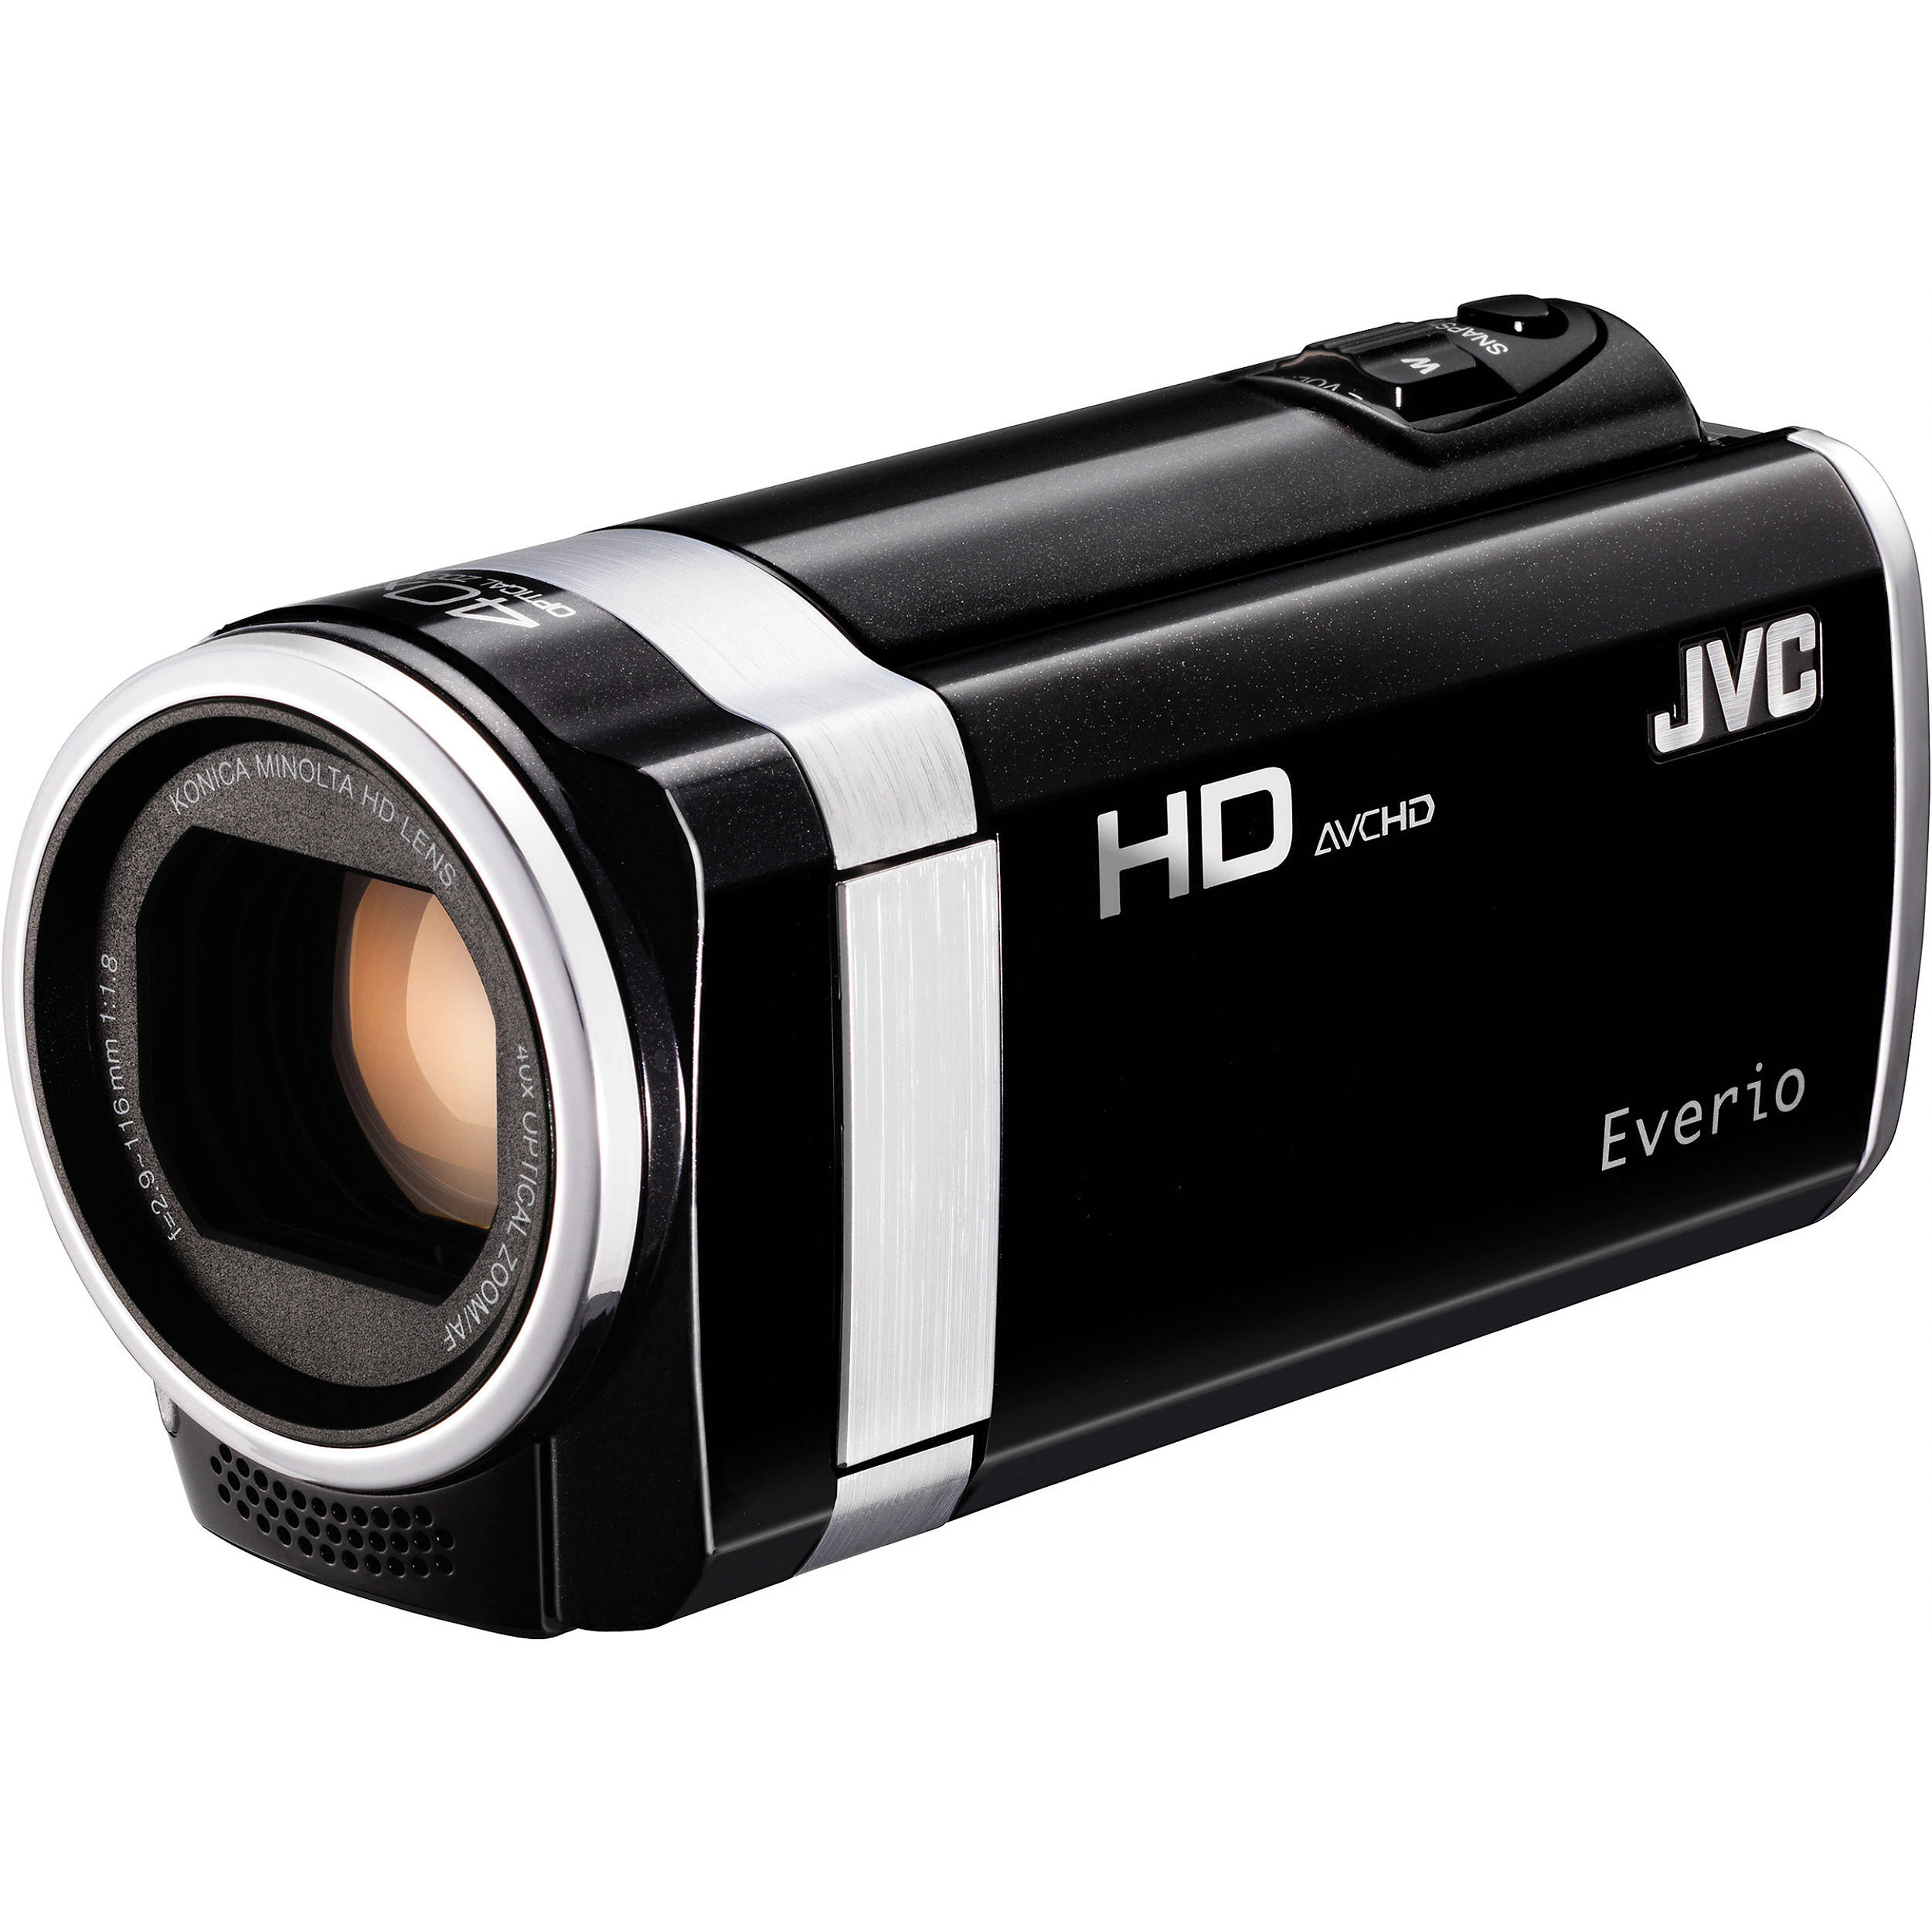 JVC GZ-HM670 HD Everio Camcorder GZ-HM670BUSM B\u0026H Photo Video